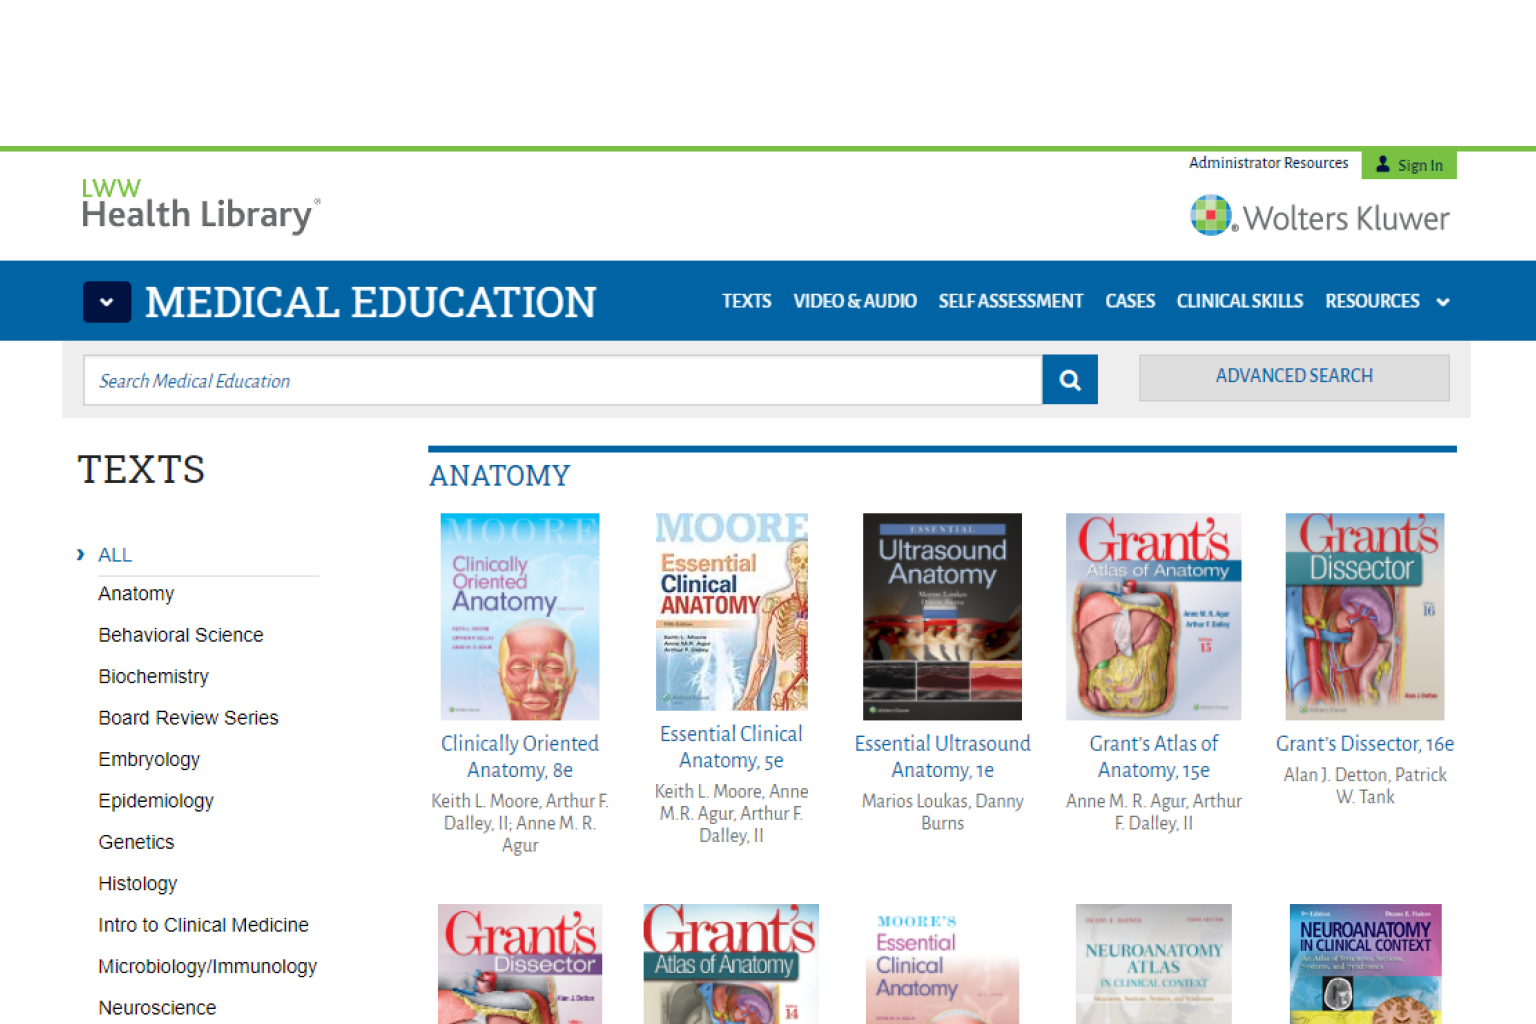 Screenshot of LWW Health Library website